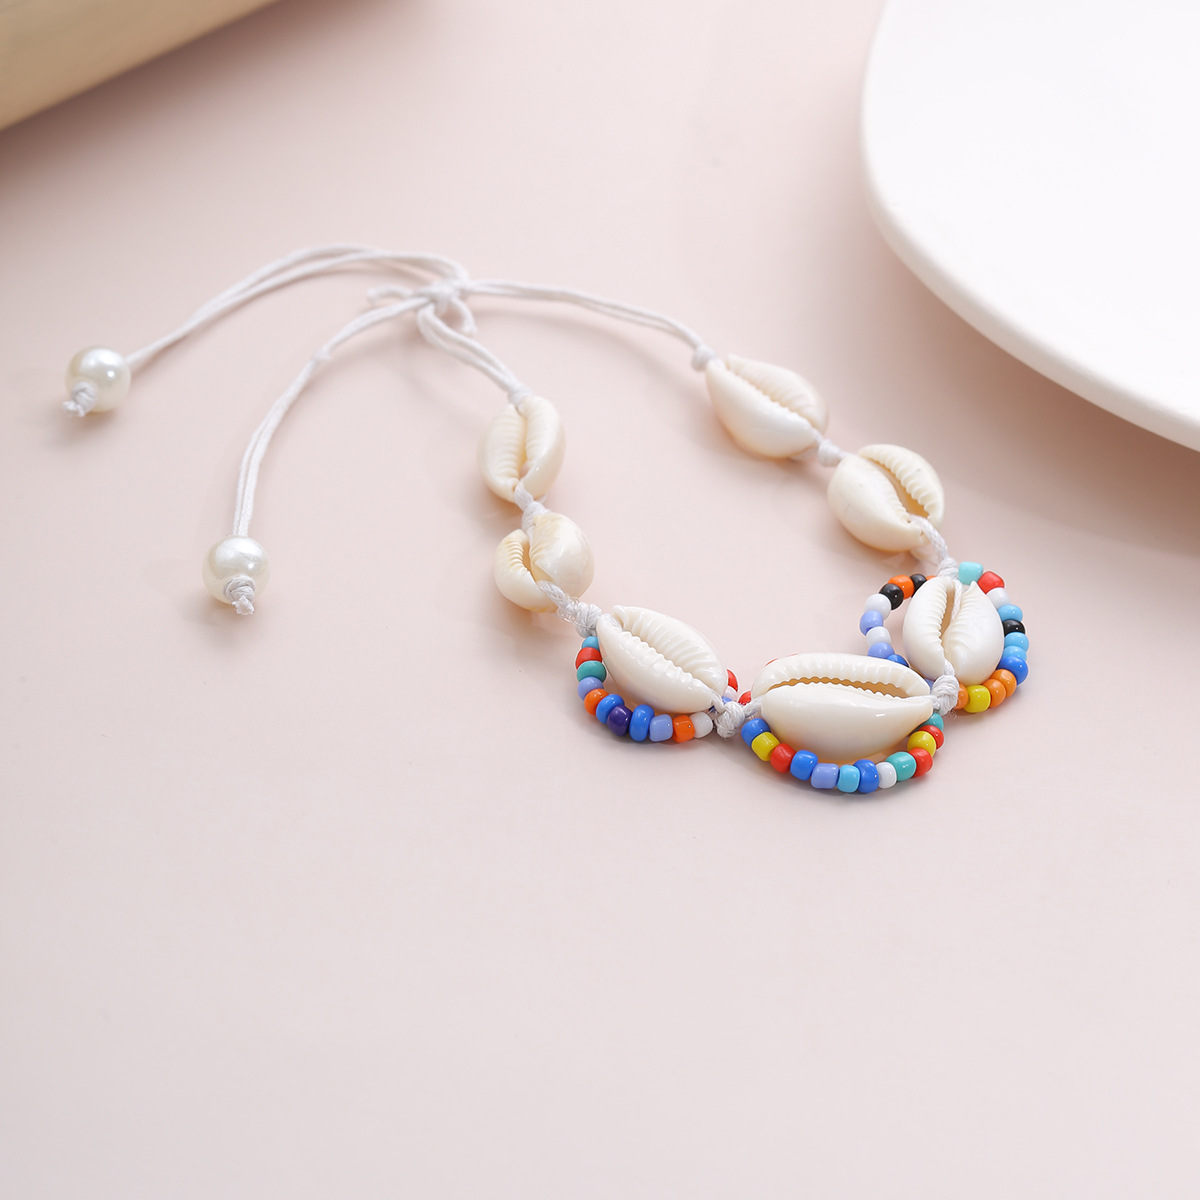 fashion jewelry wild hand-contrast color pearl beads jewelry bohemian simple shell adjustable bracelet  wholesale nihaojewelry NHXR228290